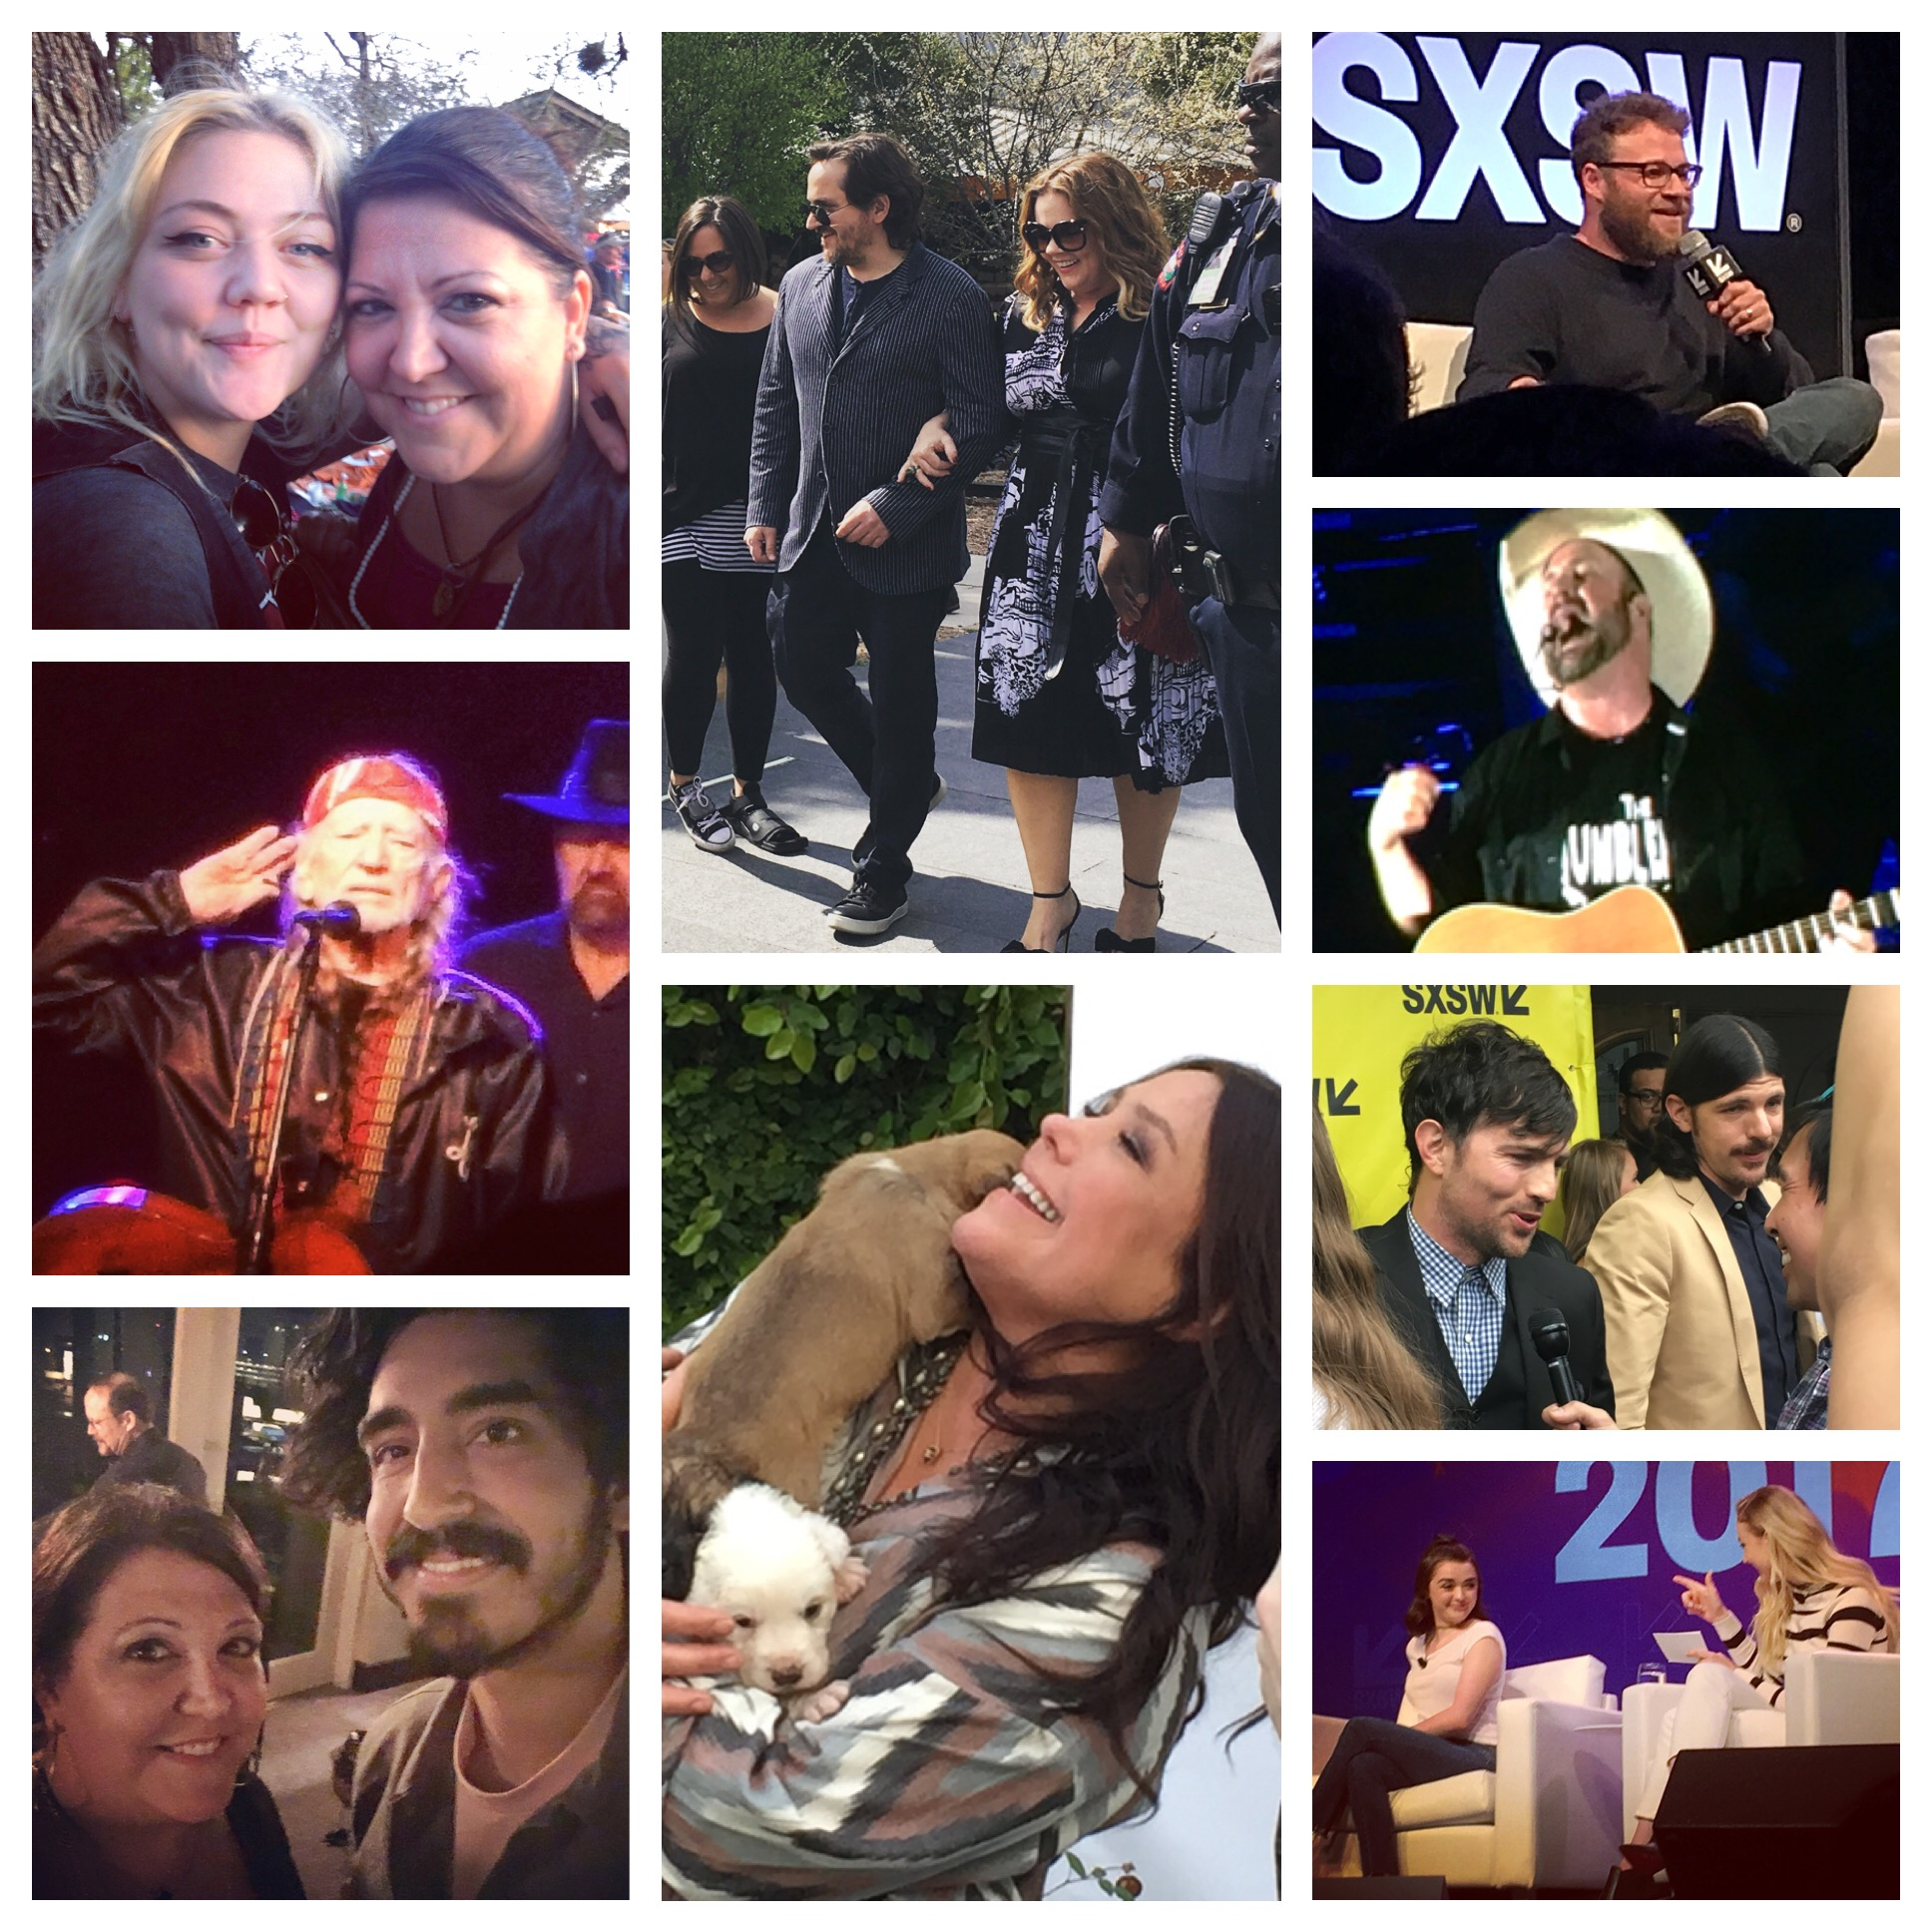 Celebrities in Austin for SXSW 2017